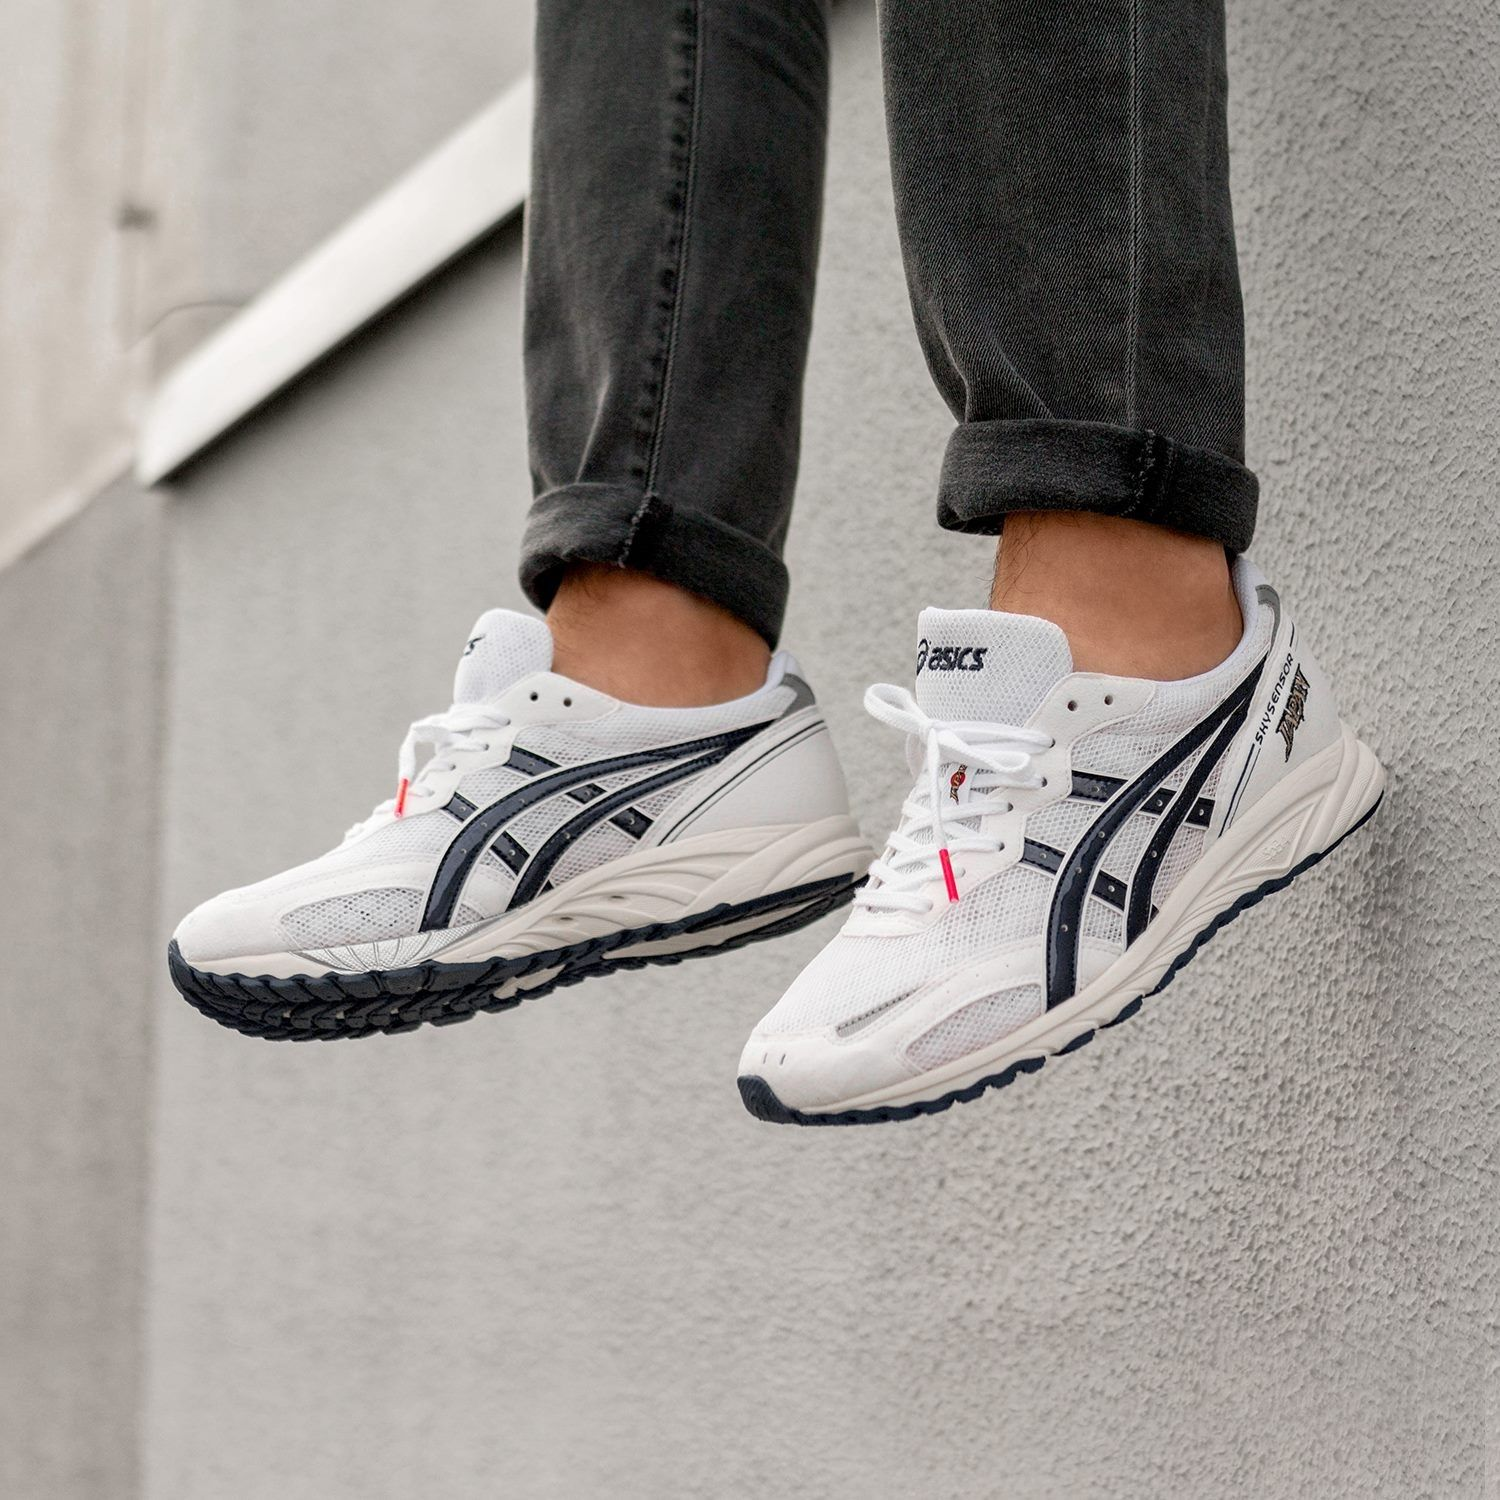 a732dabf Asics Skysensor Japan | Sneakers: Asics in 2019 | Asics, Sneakers, Shoes